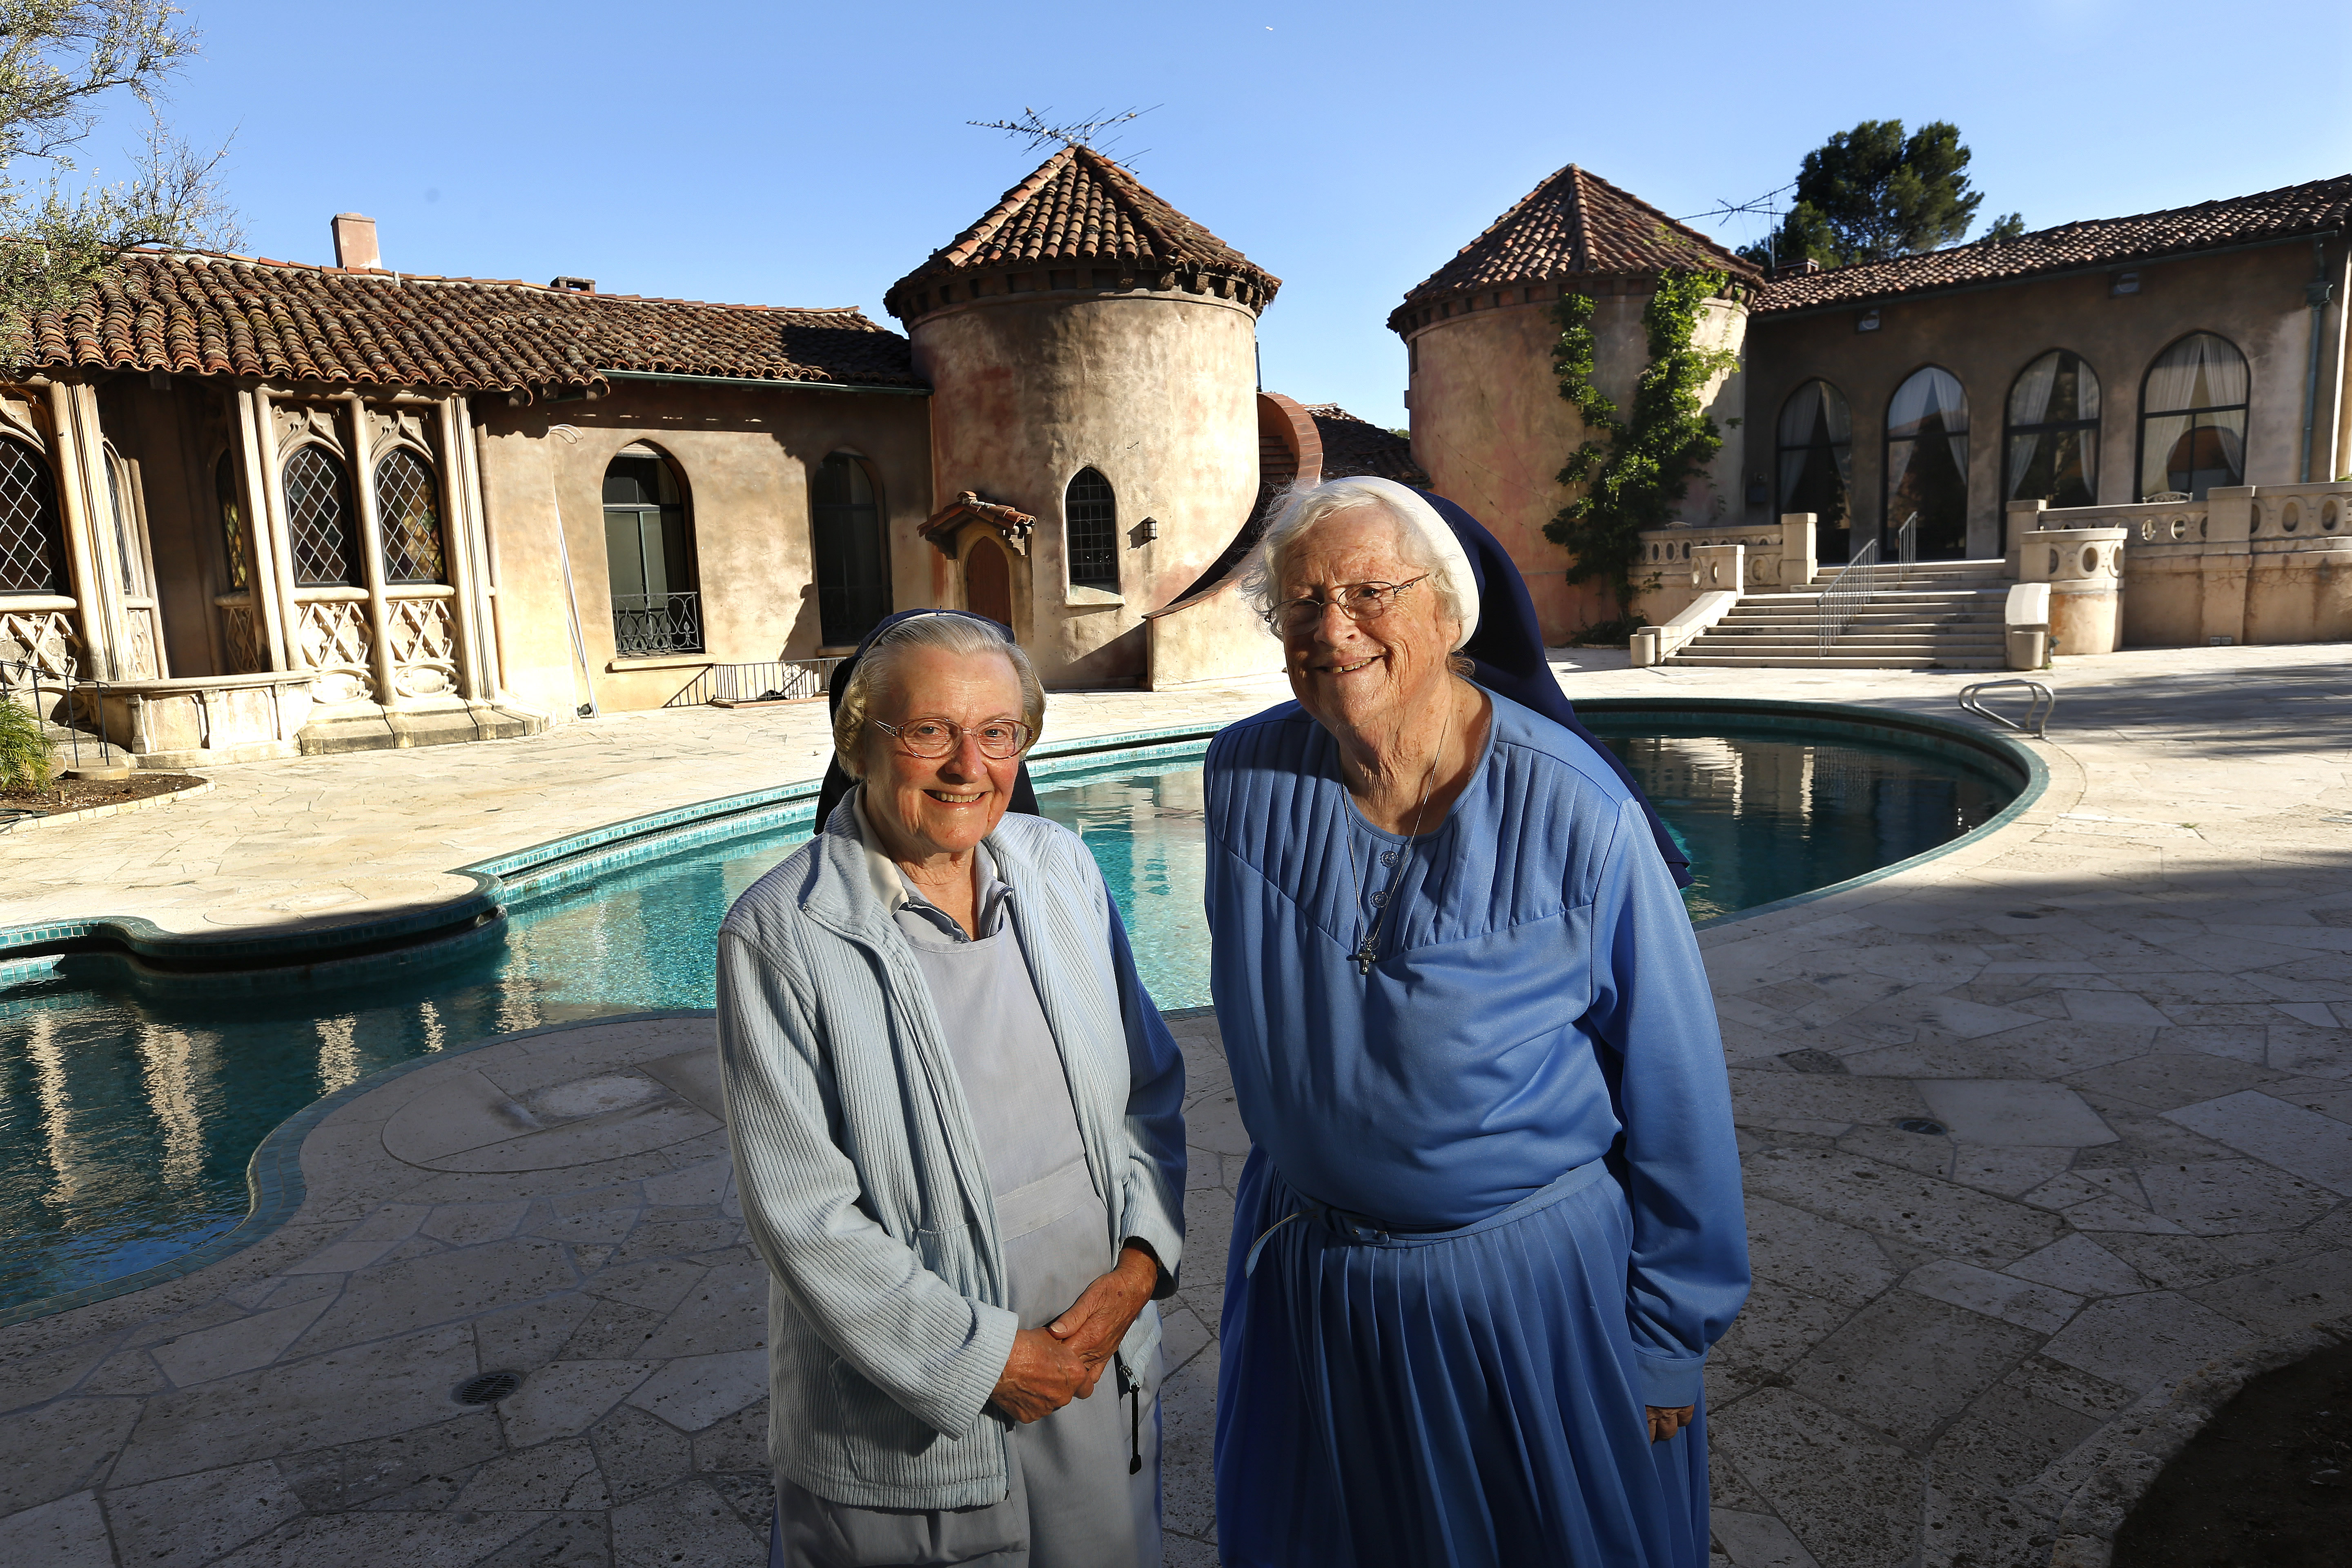 Sister Catherine Rose (L) and Sister Rita Callanan (77) stand outside the Sisters of the Immaculate Heart of Mary Retreat House on June 25, 2015 in in Los Feliz, California.  The Sisters of the Immaculate Heart recently sold their property to restaurateur Dana Hollister, but the Archdiocese of Los Angeles has argued that only they have the authority to sell the property, and plan to sell it to singer Katy Perry.